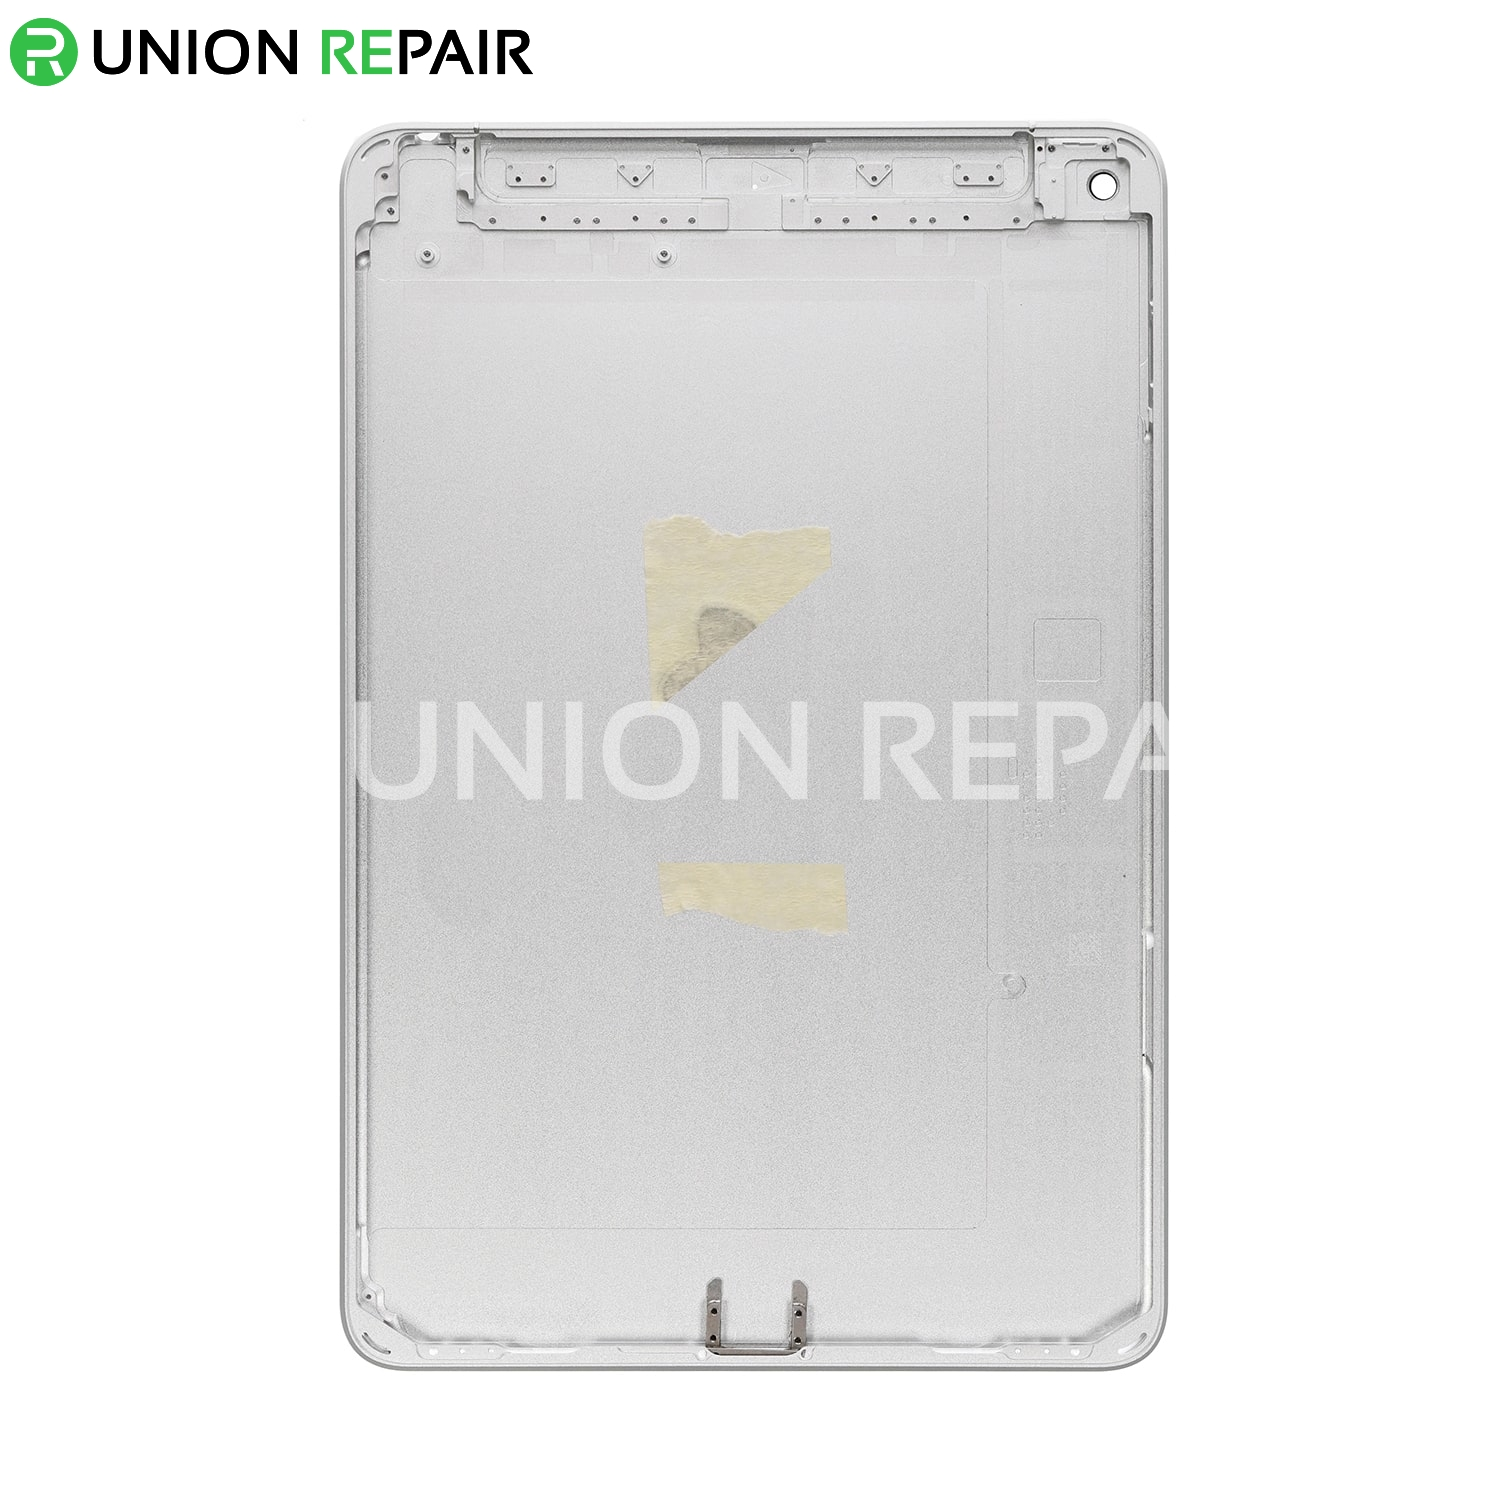 Replacement for iPad Mini 5 WiFi+Cellular Back Cover - Silver